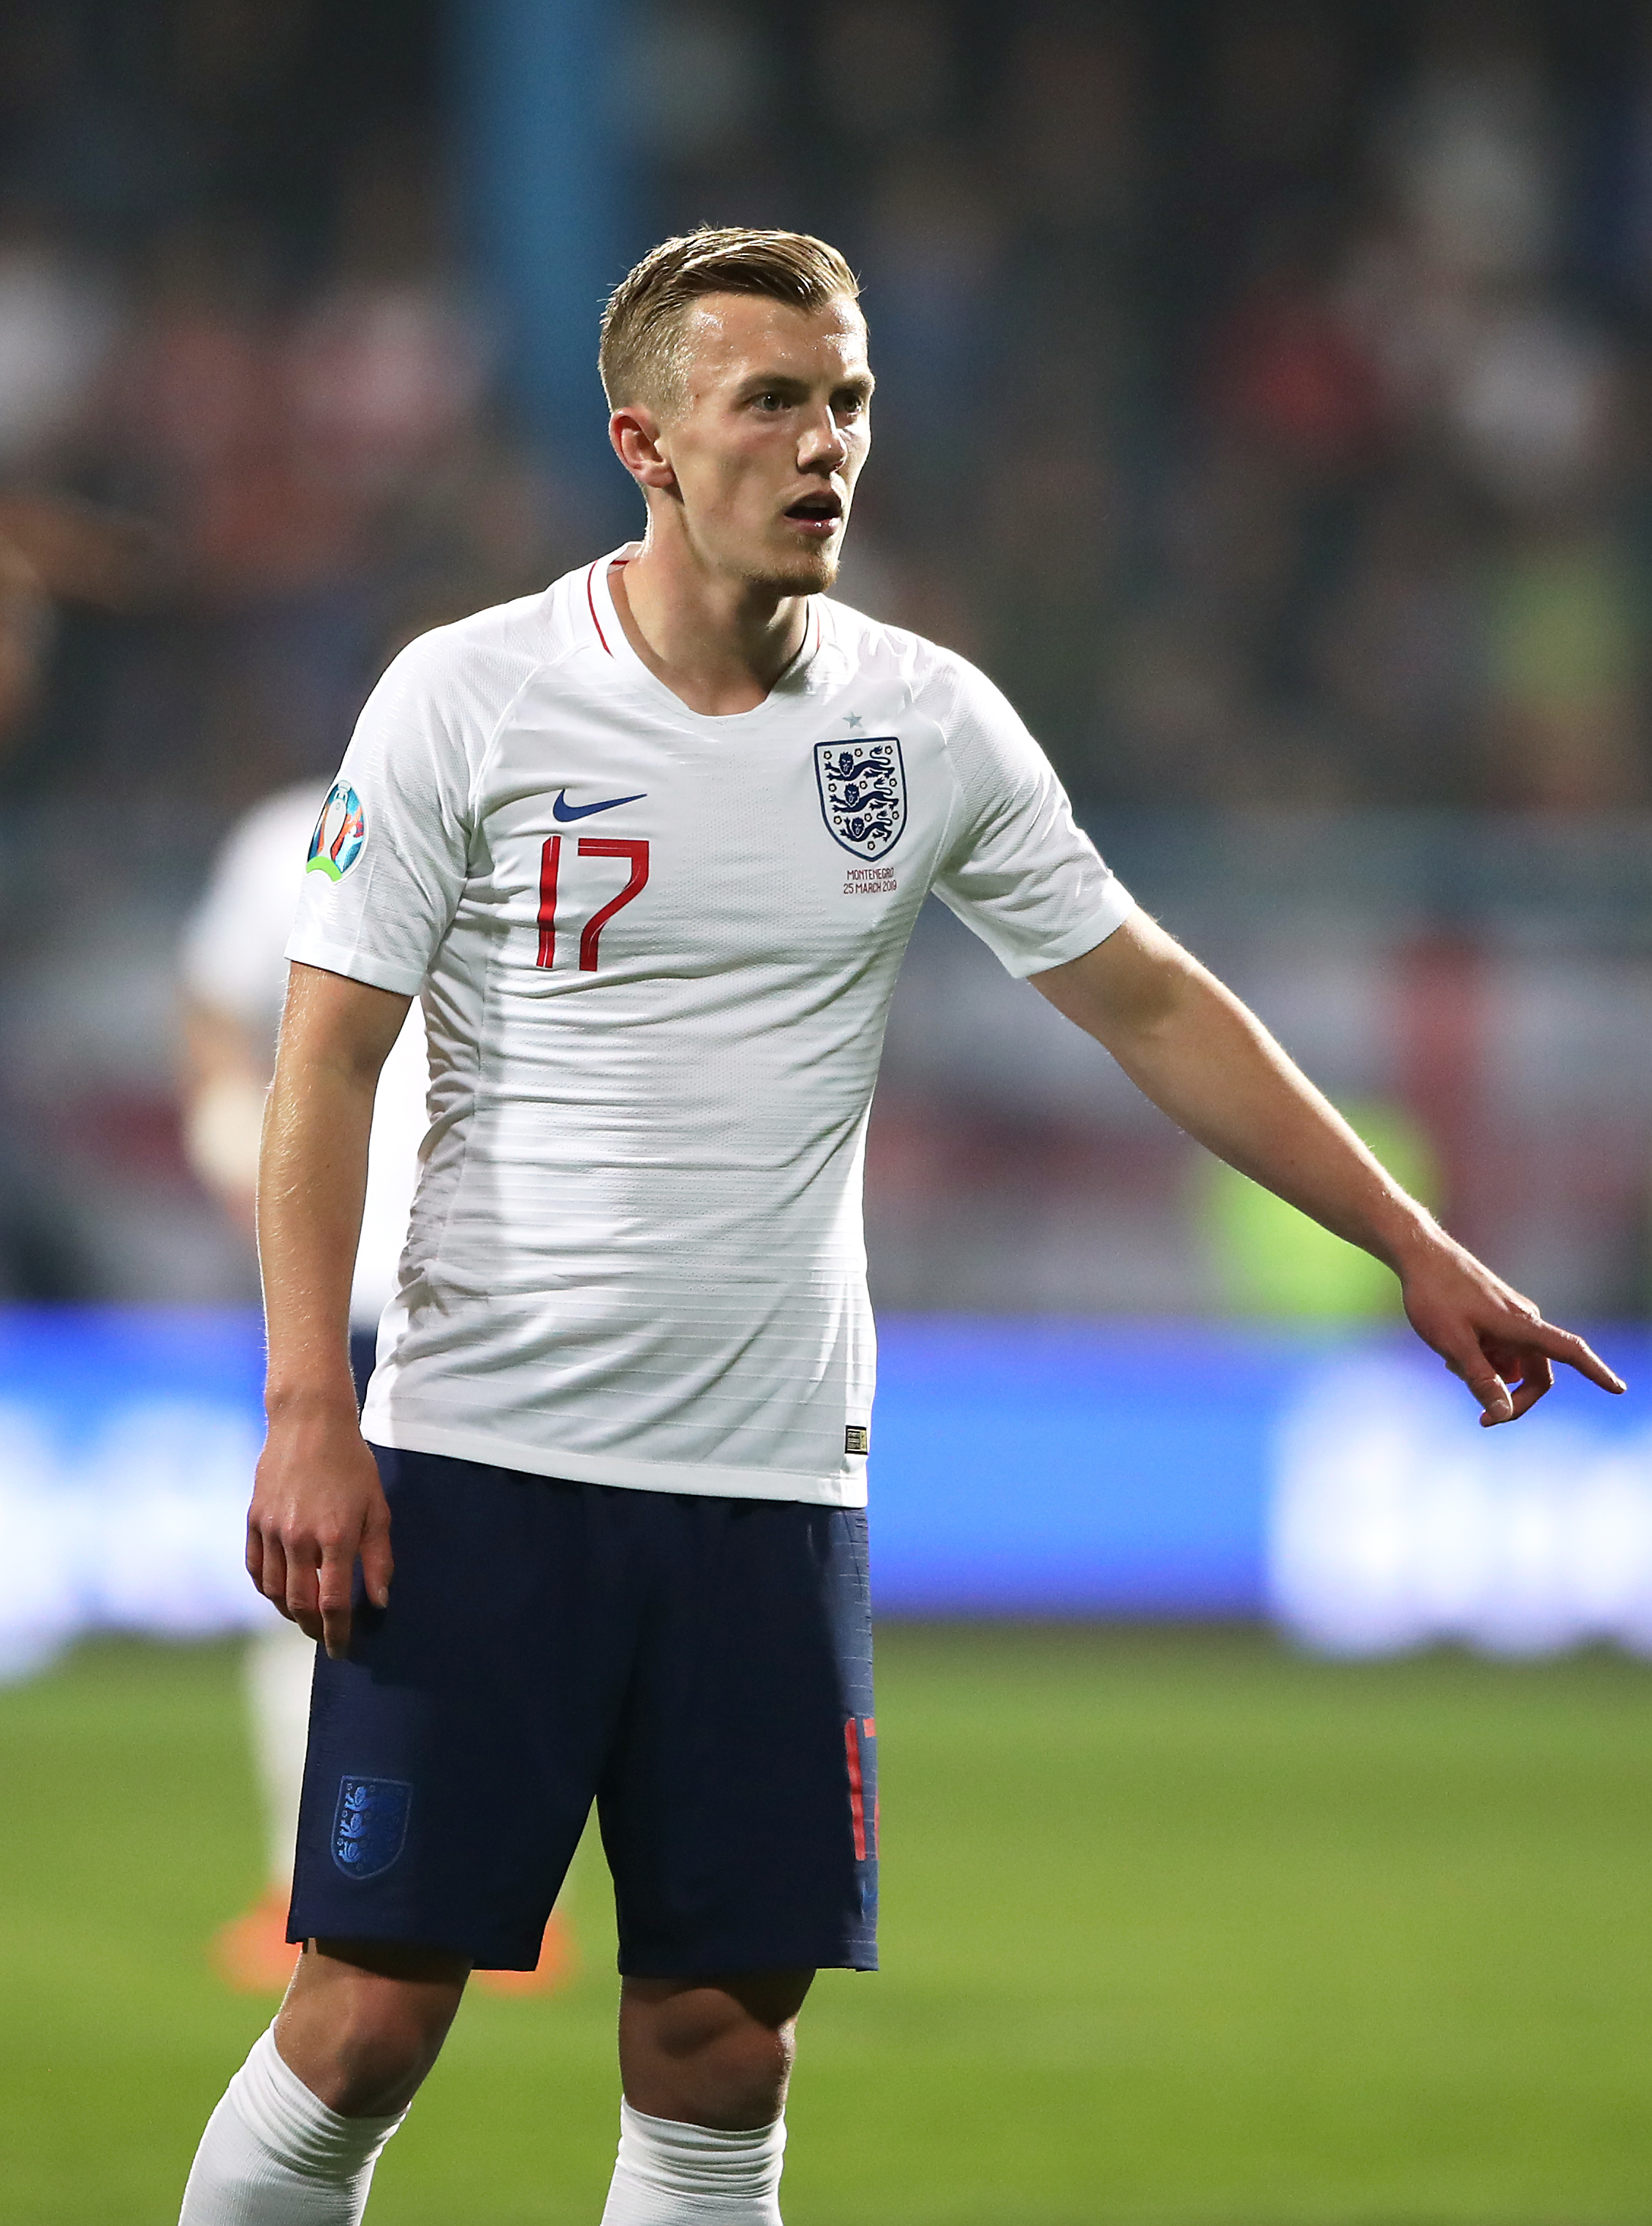 James Ward-Prowse in action for England against Montenegro